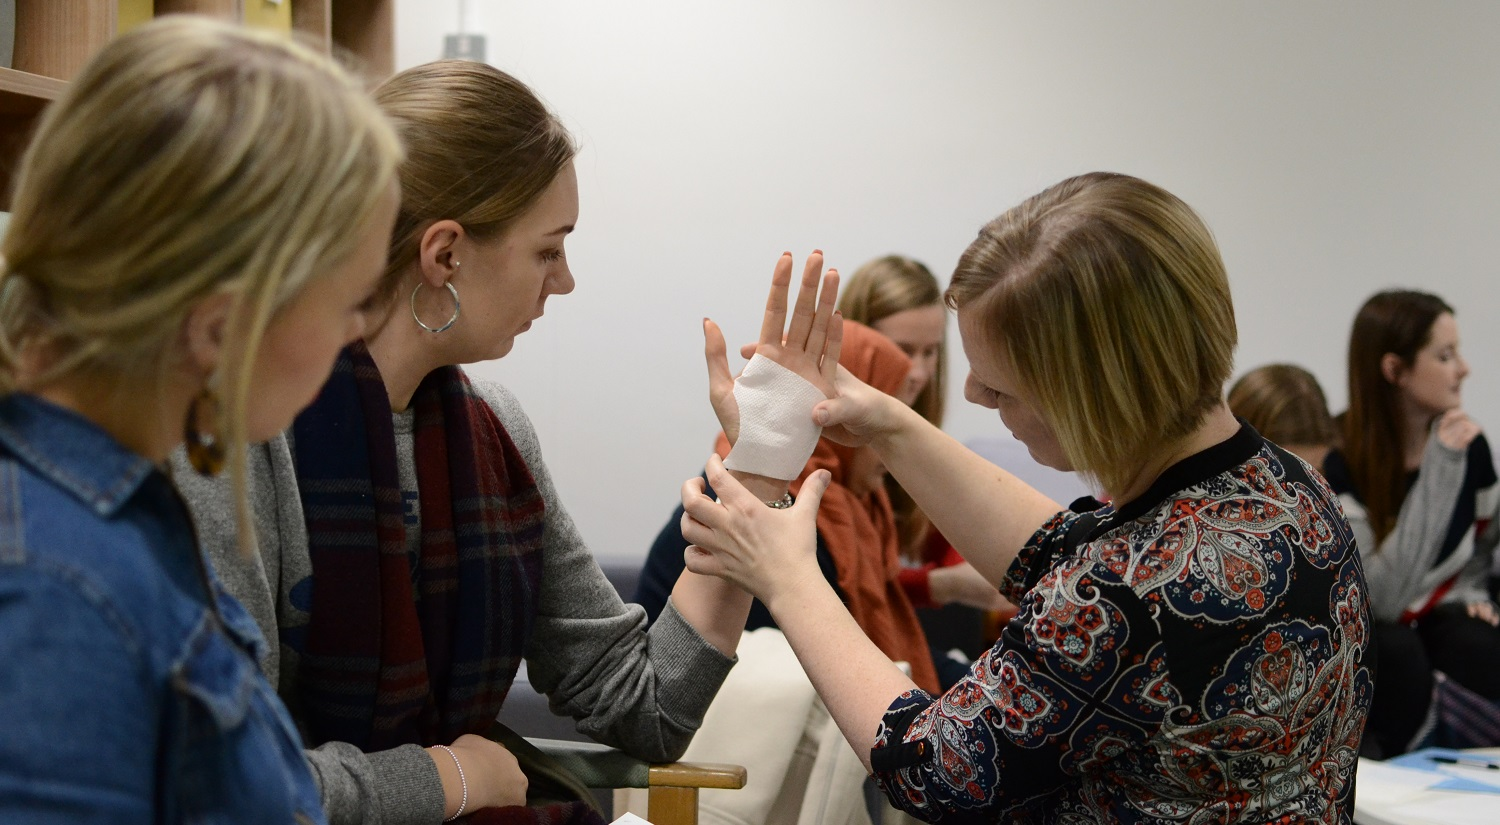 On the right, with her back to the camera, is Selena Hammond from the School of Health and Social Care. On the left are two students. The student in the middle has her elbow resting on the arm of her chair, her hand pointing up. Selena is holding a piece of sterile bandage against the hand, as part of a demonstration on how to make a splint. Several other students are sitting in the background.